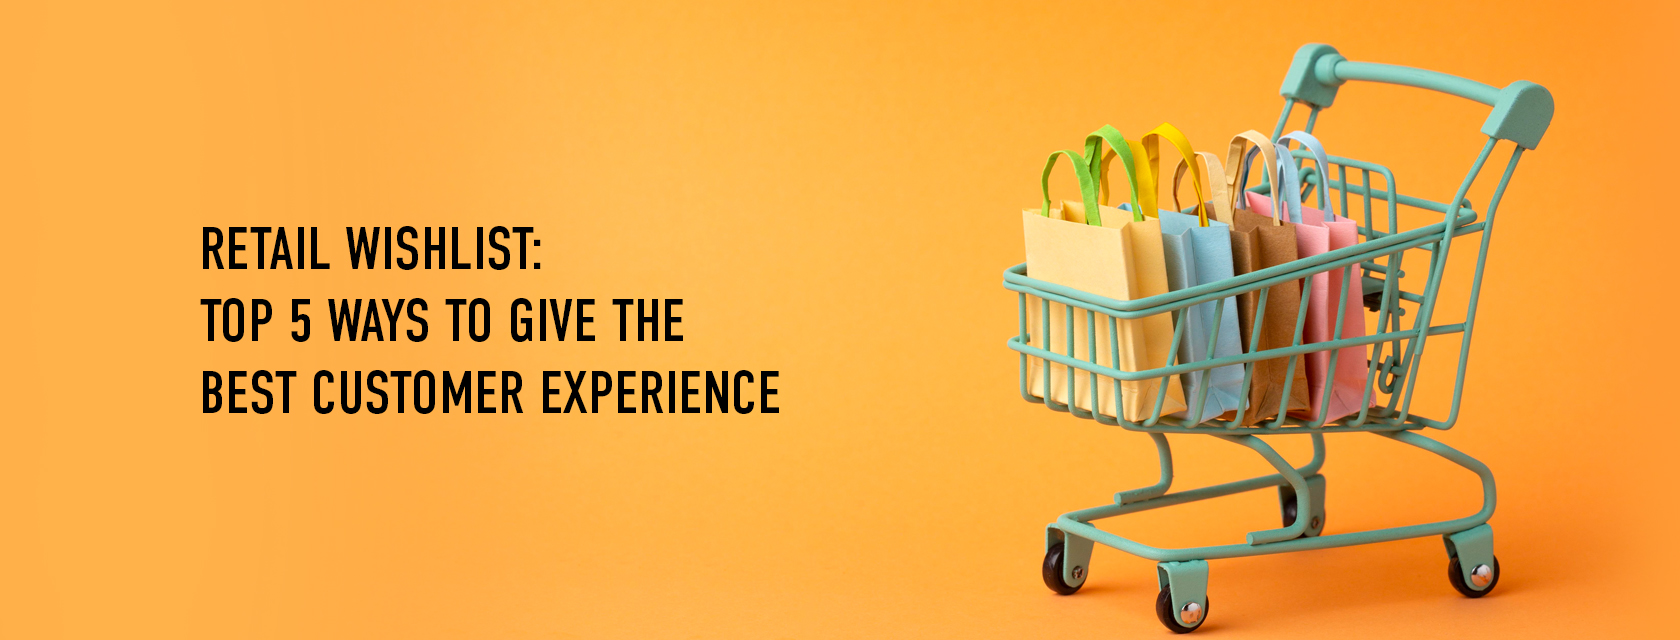 Retail Wishlist: Top 5 Ways To Give The Best Customer Experience